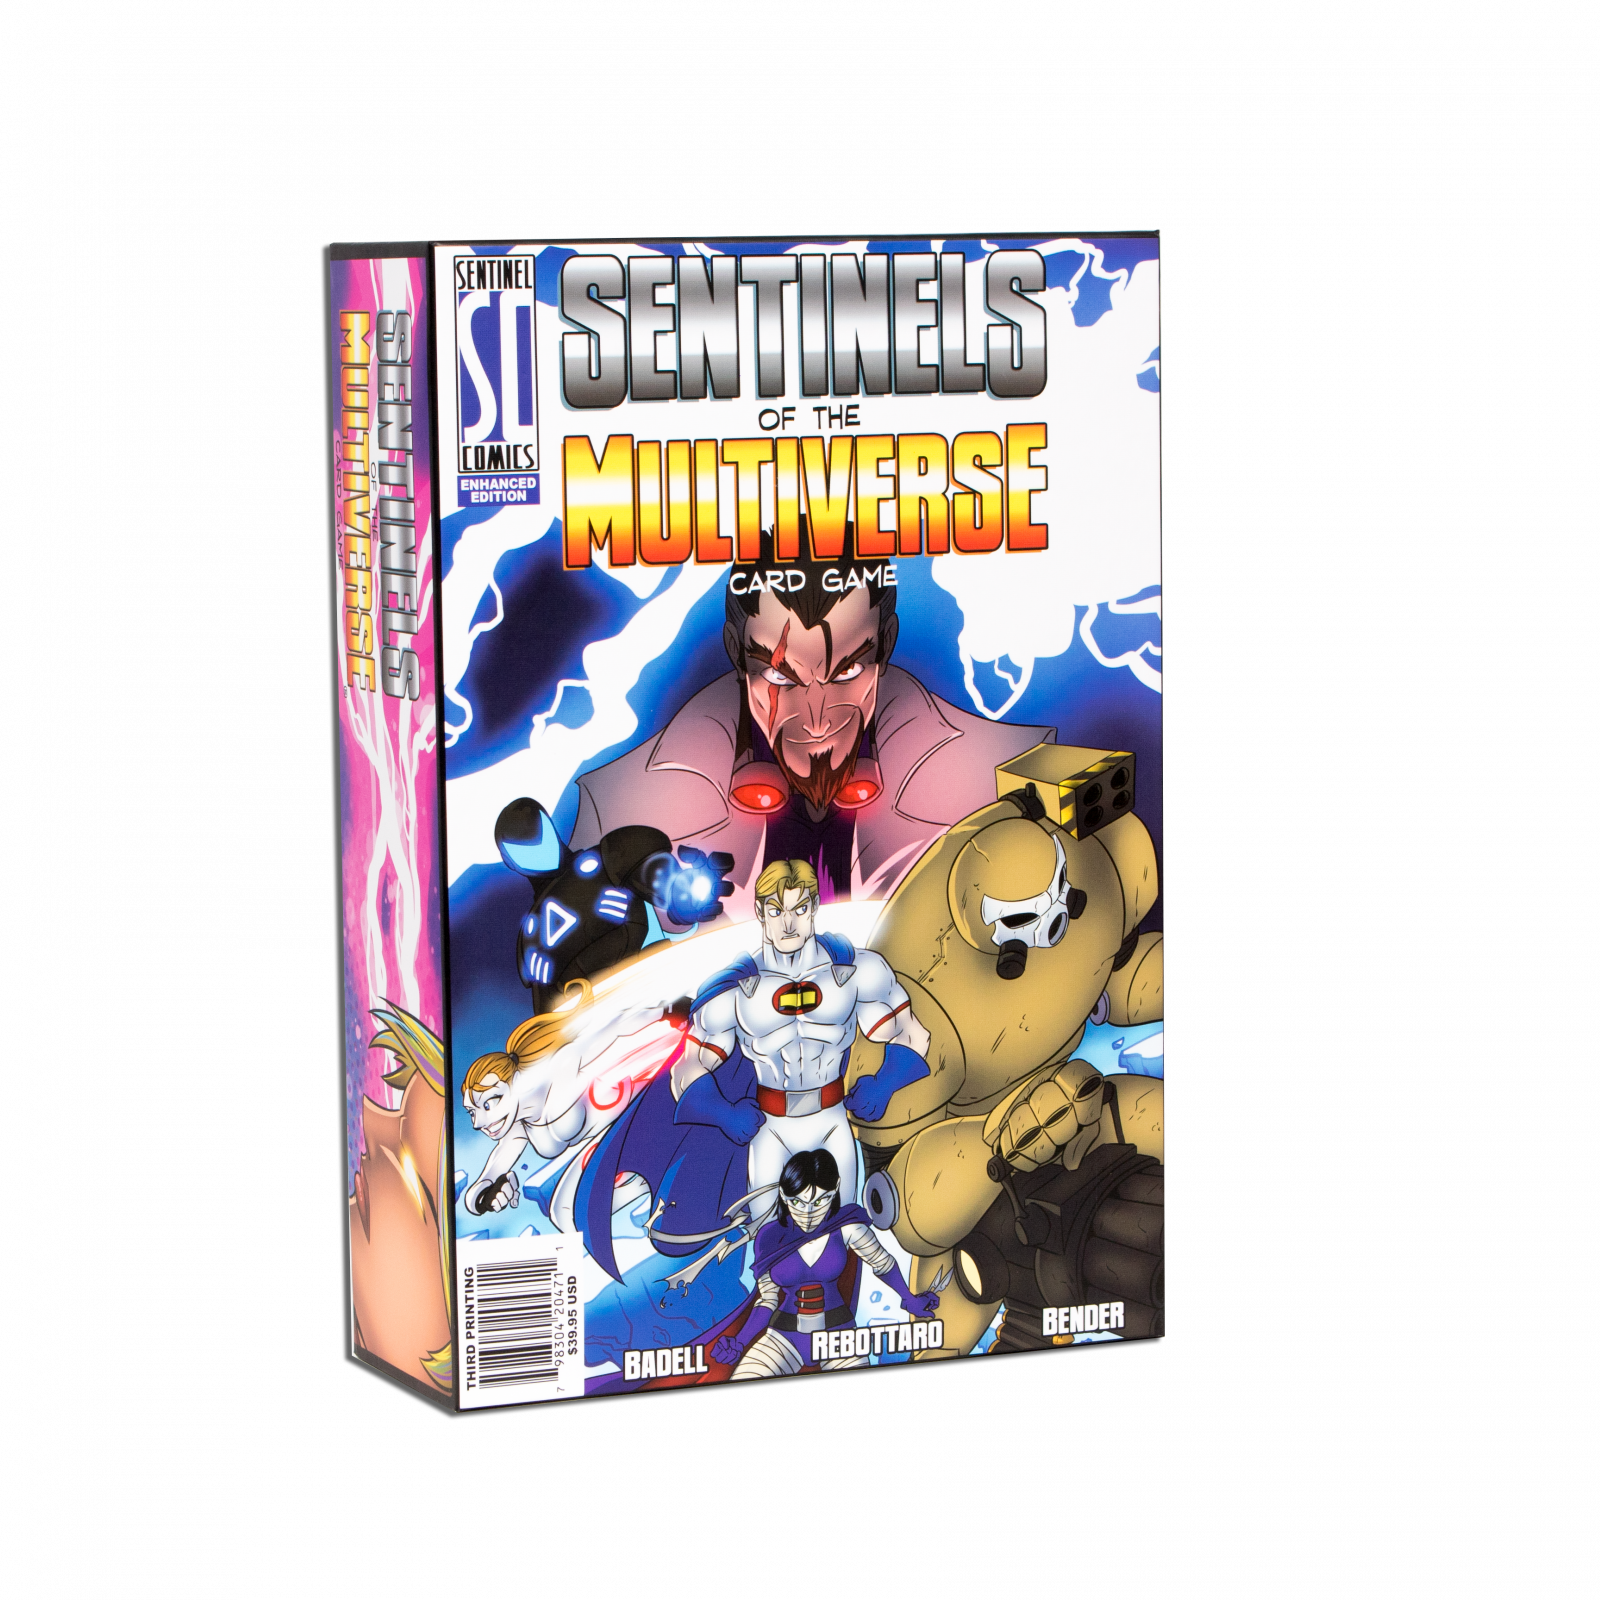 Pret mic Sentinels of the Multiverse: Core Game